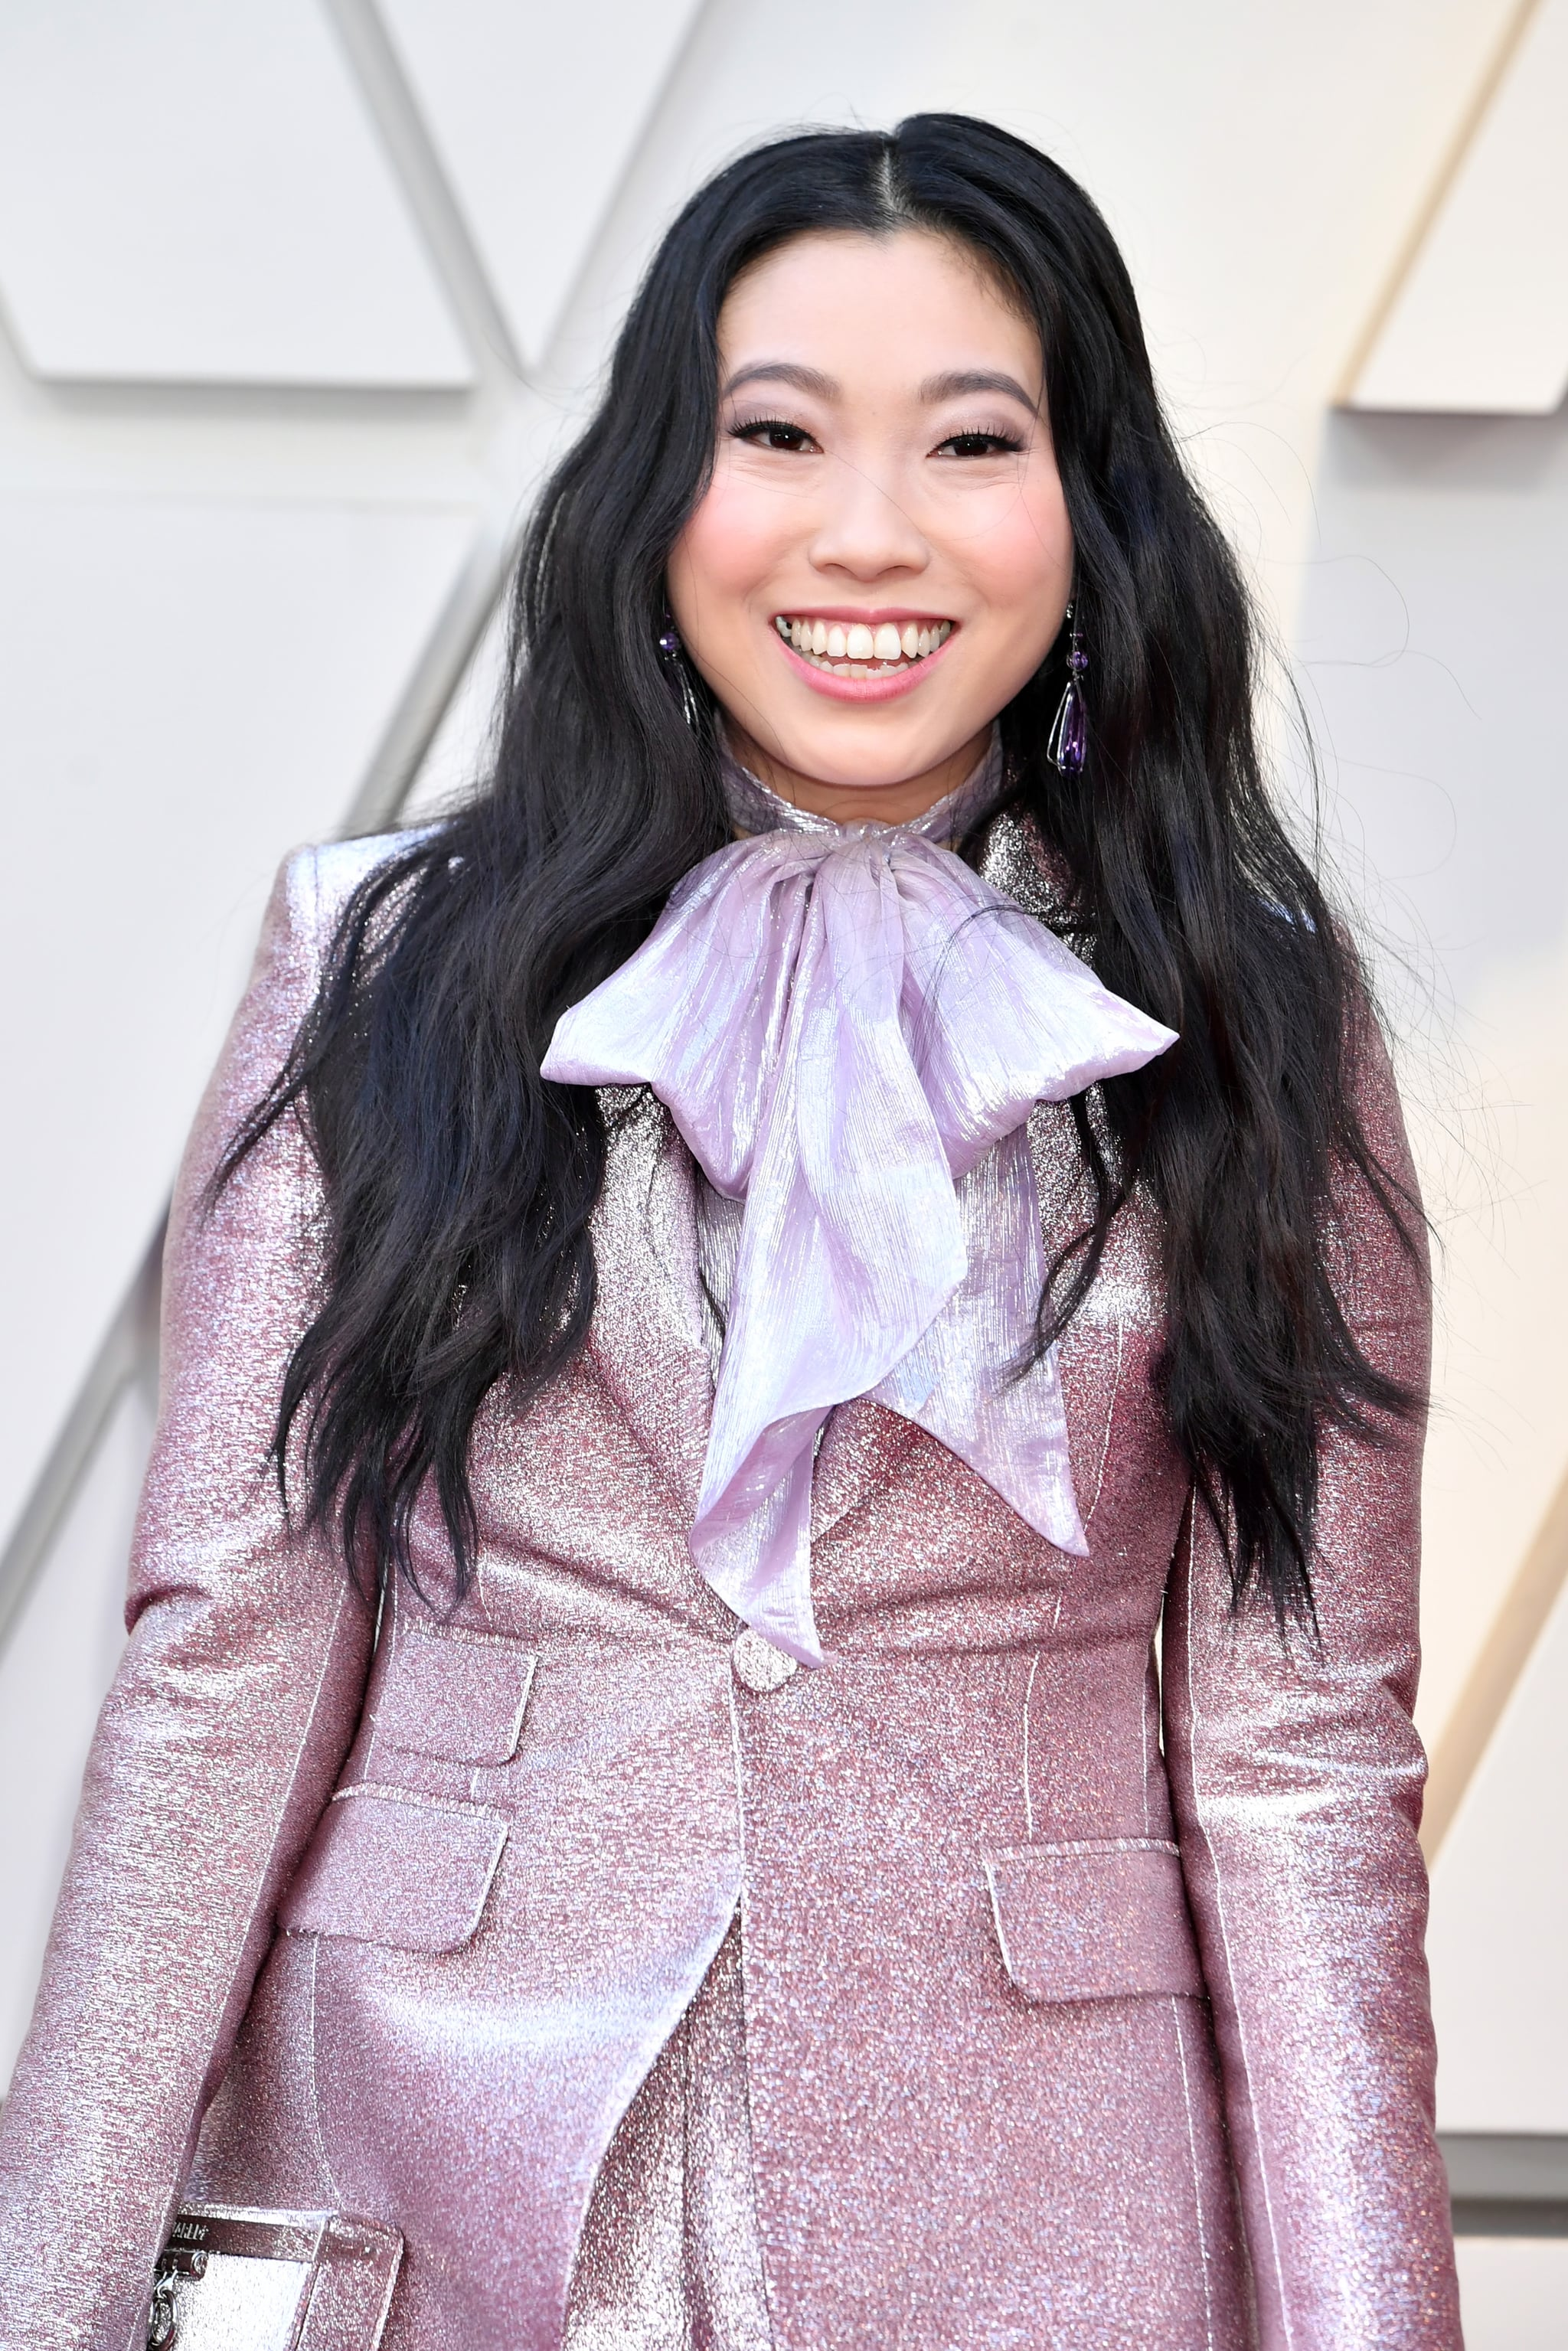 HOLLYWOOD, CA - FEBRUARY 24:  Awkwafina attends the 91st Annual Academy Awards at Hollywood and Highland on February 24, 2019 in Hollywood, California.  (Photo by Jeff Kravitz/FilmMagic)